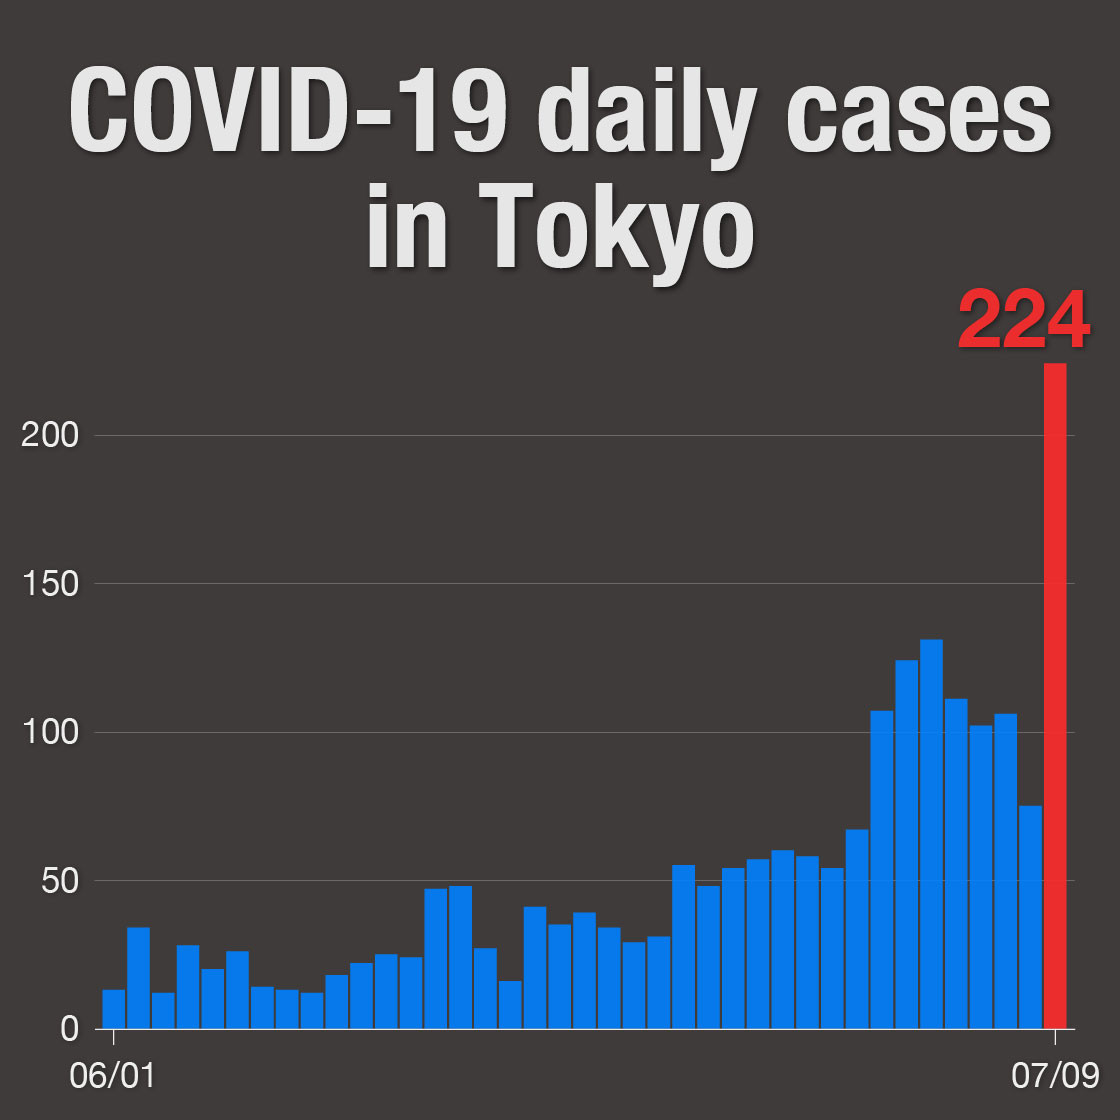 Restrictions lifted one day after Tokyo records record number of new coronavirus cases